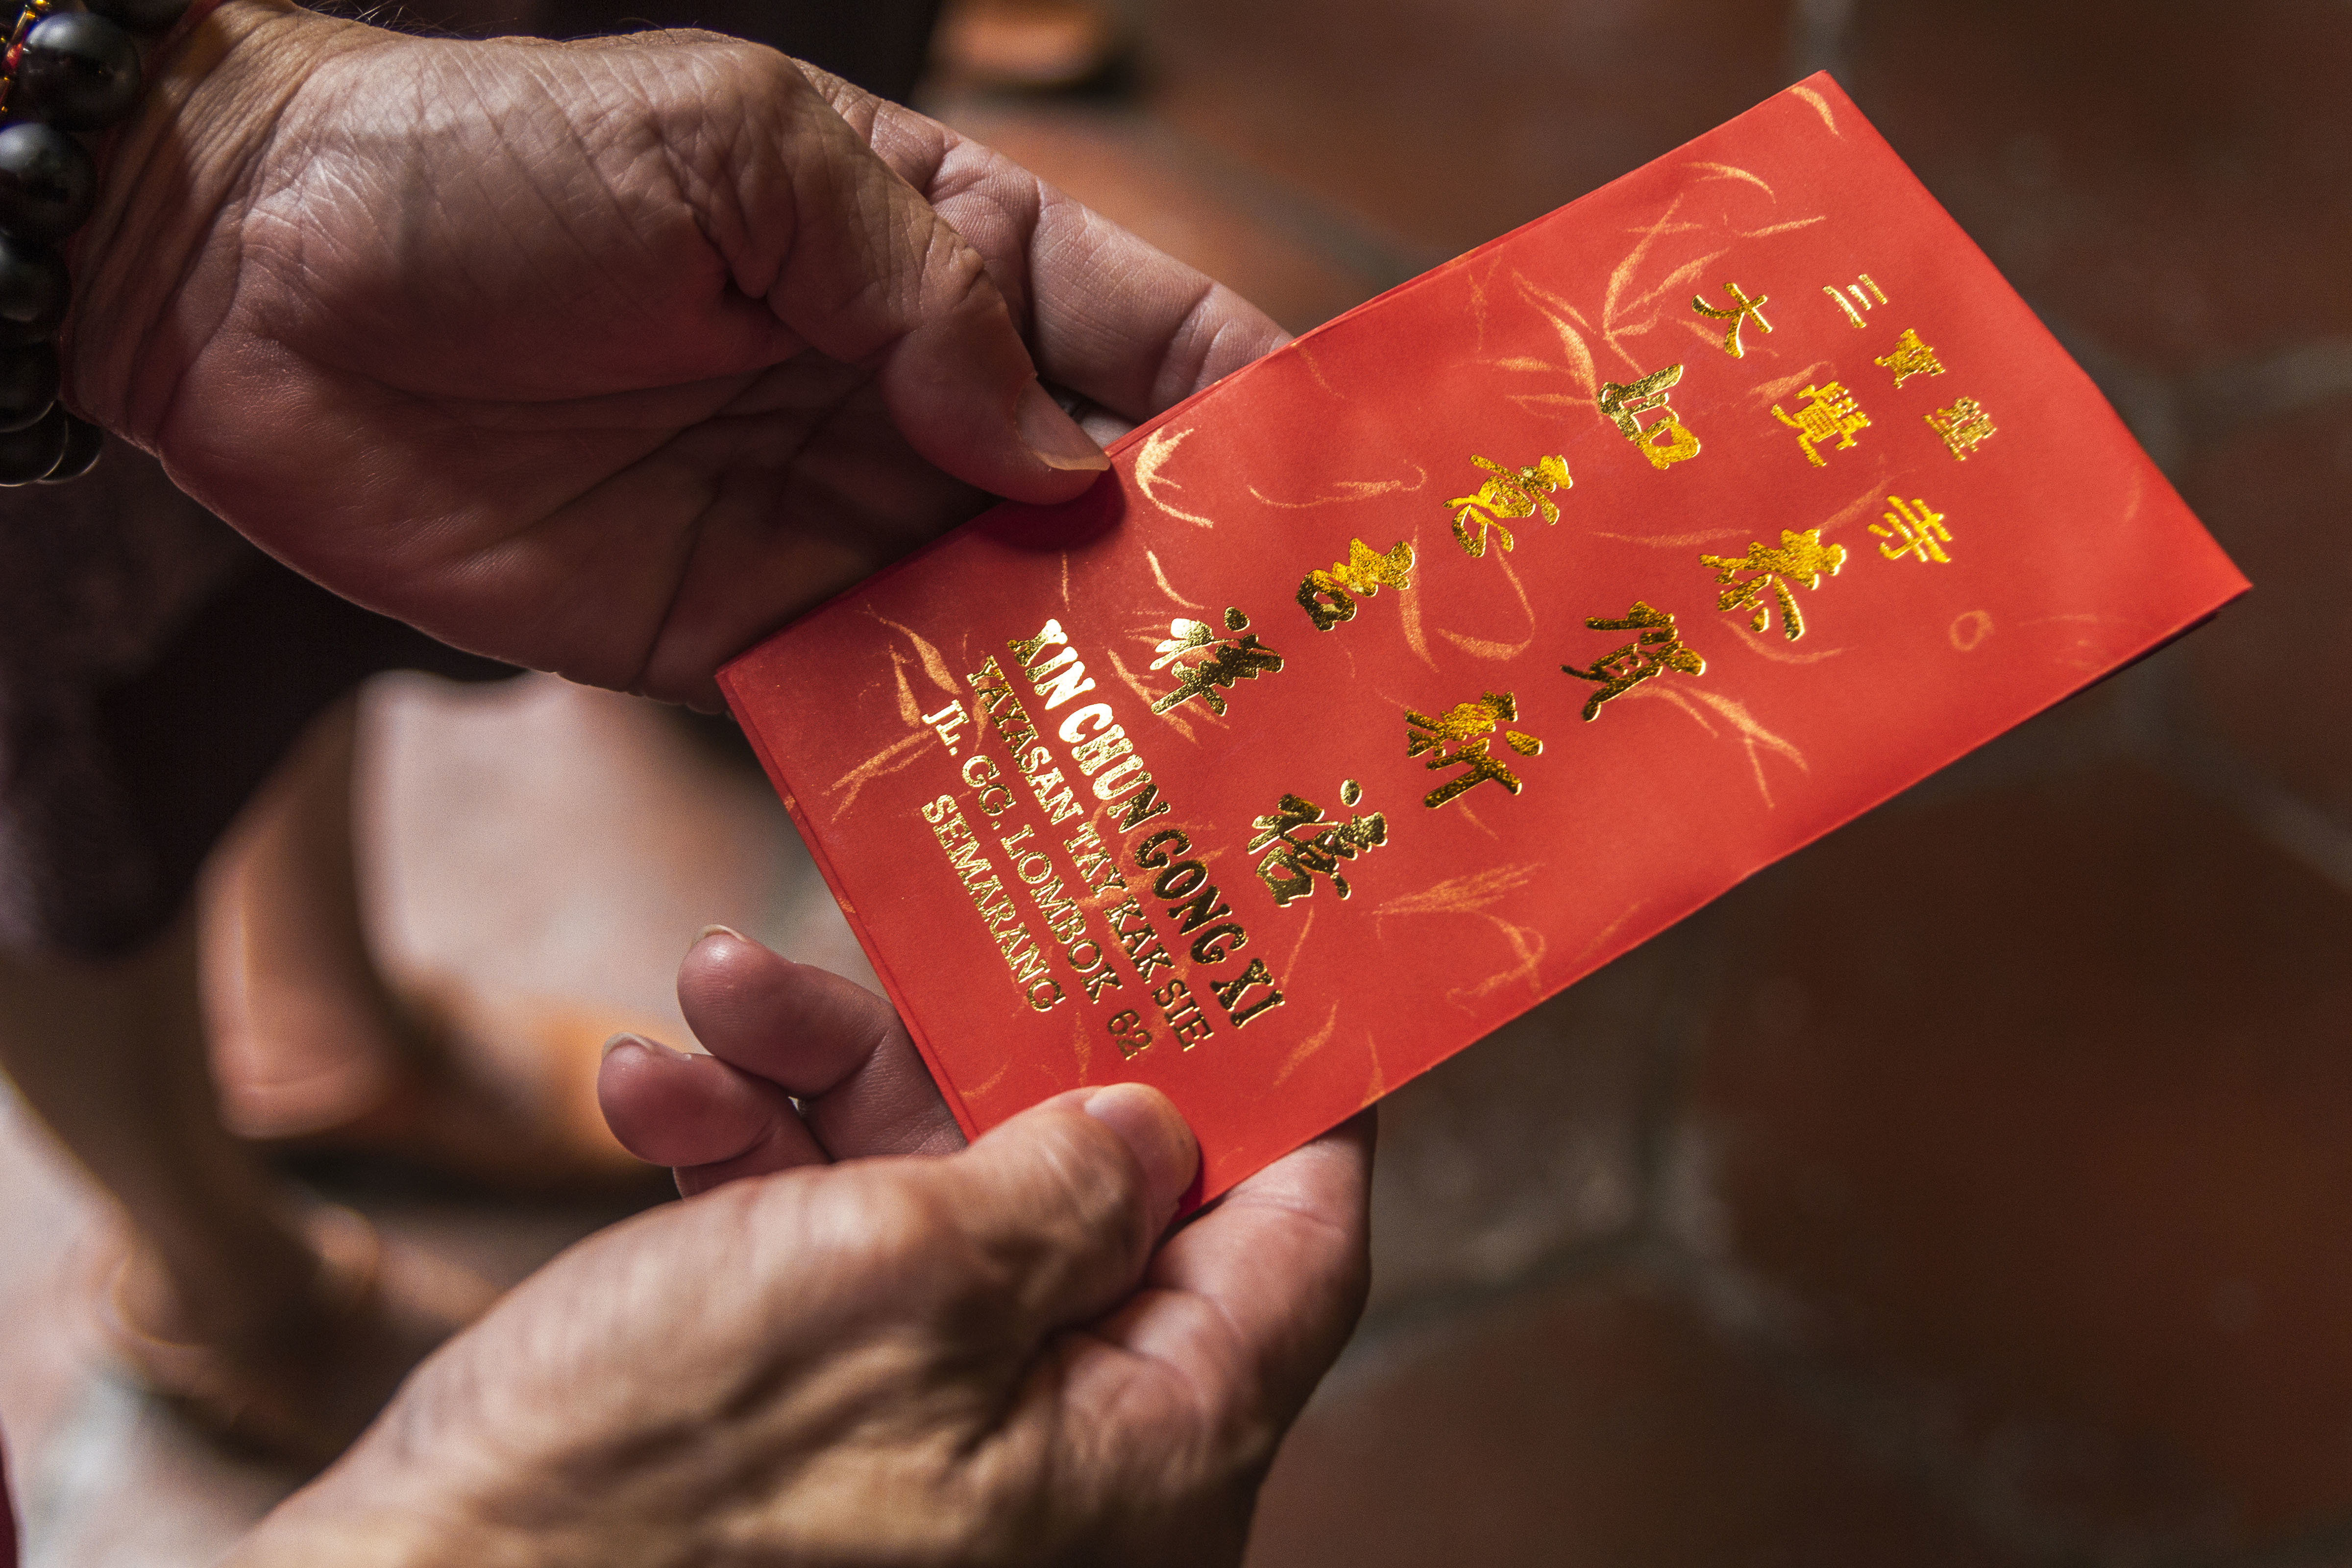 A donor seen holding a red envelope in Semarang City, Indonesia on Jan. 31 2016. NurPhoto/Getty Images